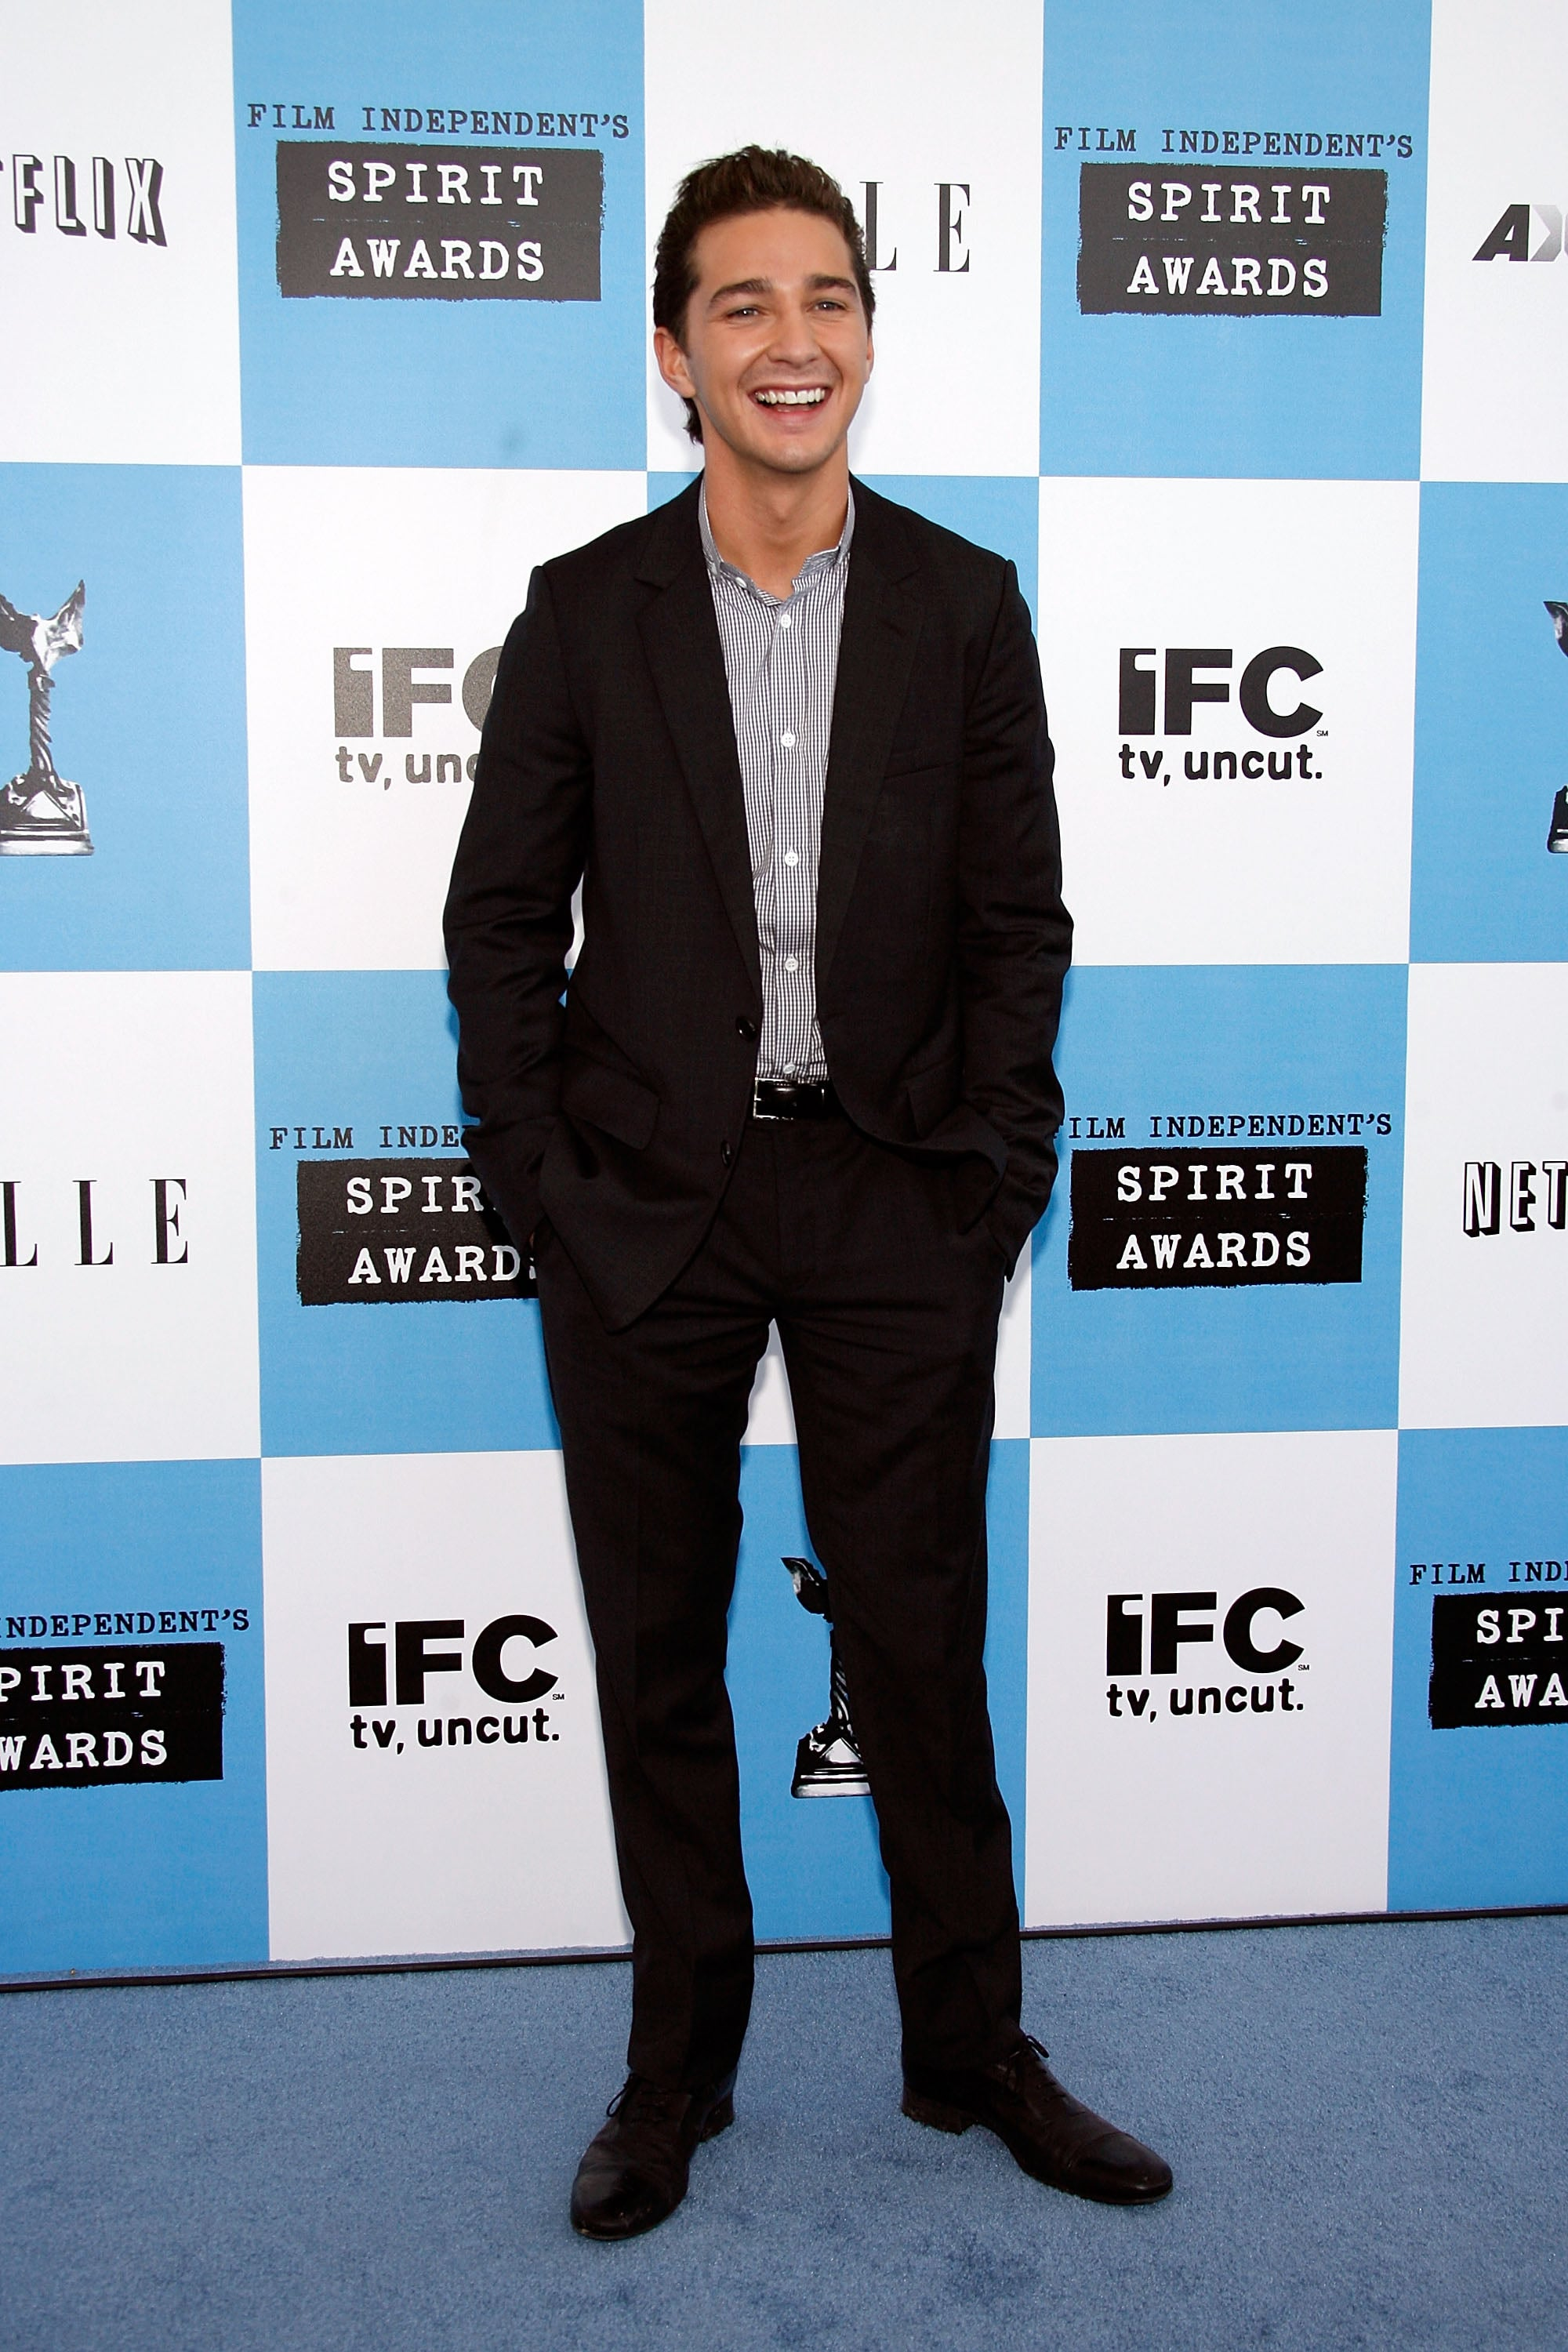 He let out a laugh while arriving at the Independent Spirit Awards in February 2007.